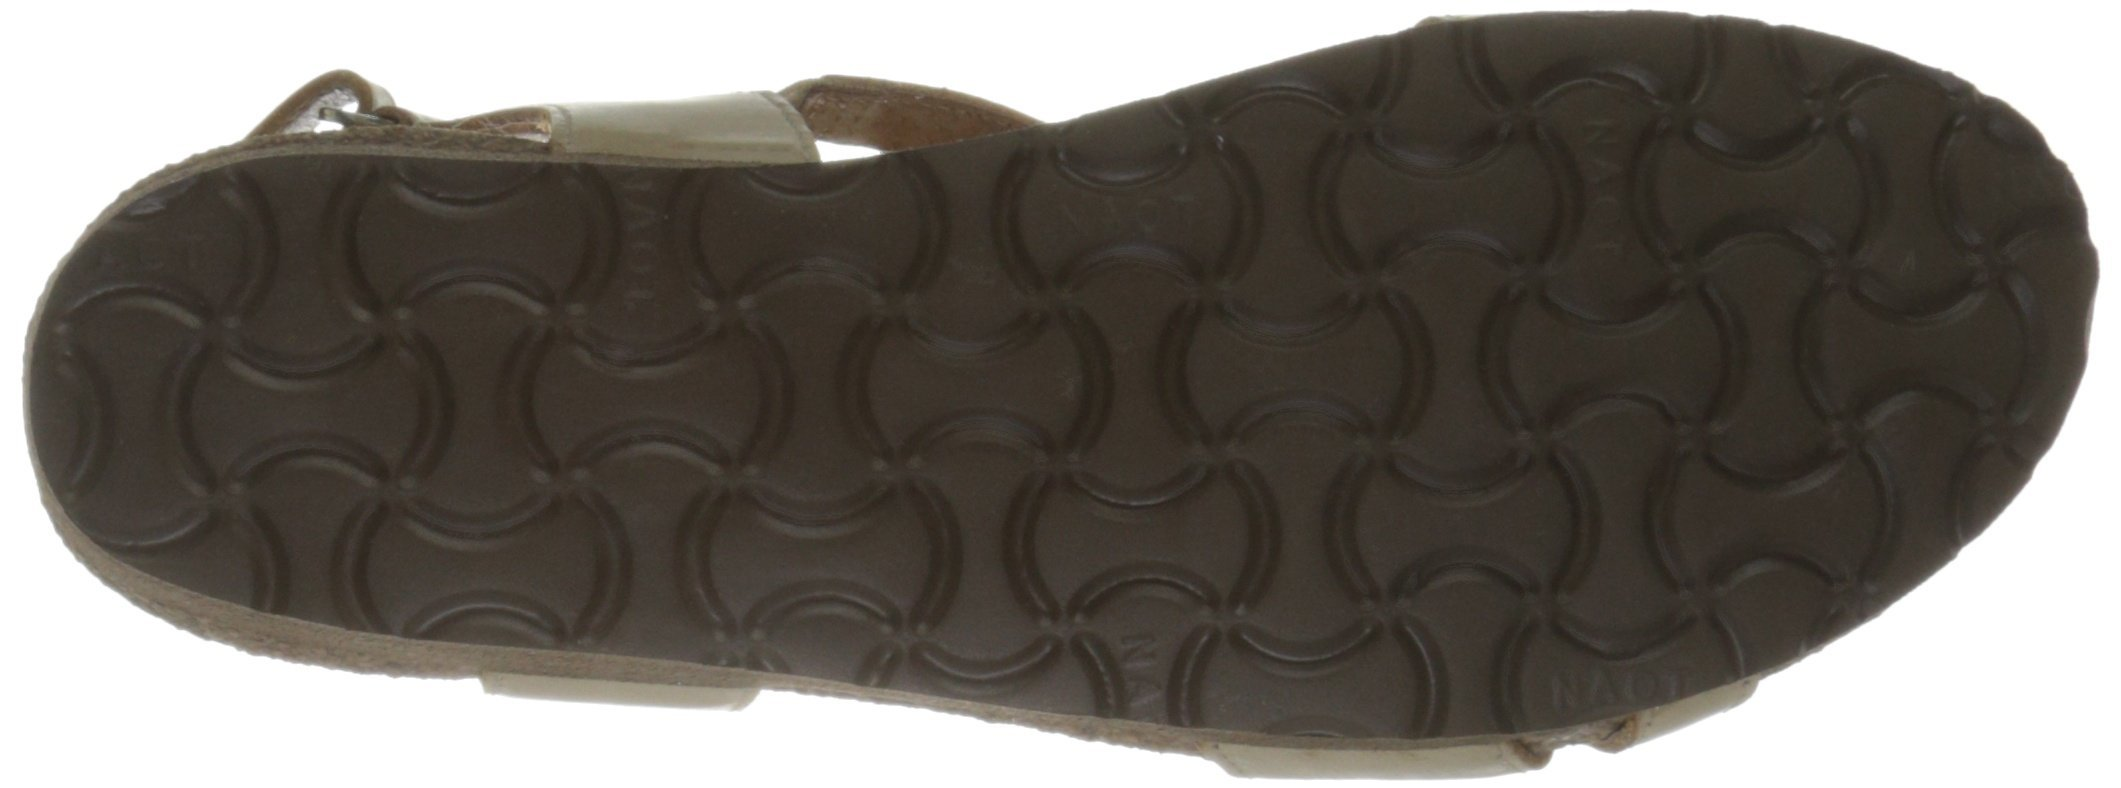 Naot Women's Bernice Wedge Sandal, Biscuit Leather, 35 EU/4.5-5 M US by NAOT (Image #3)